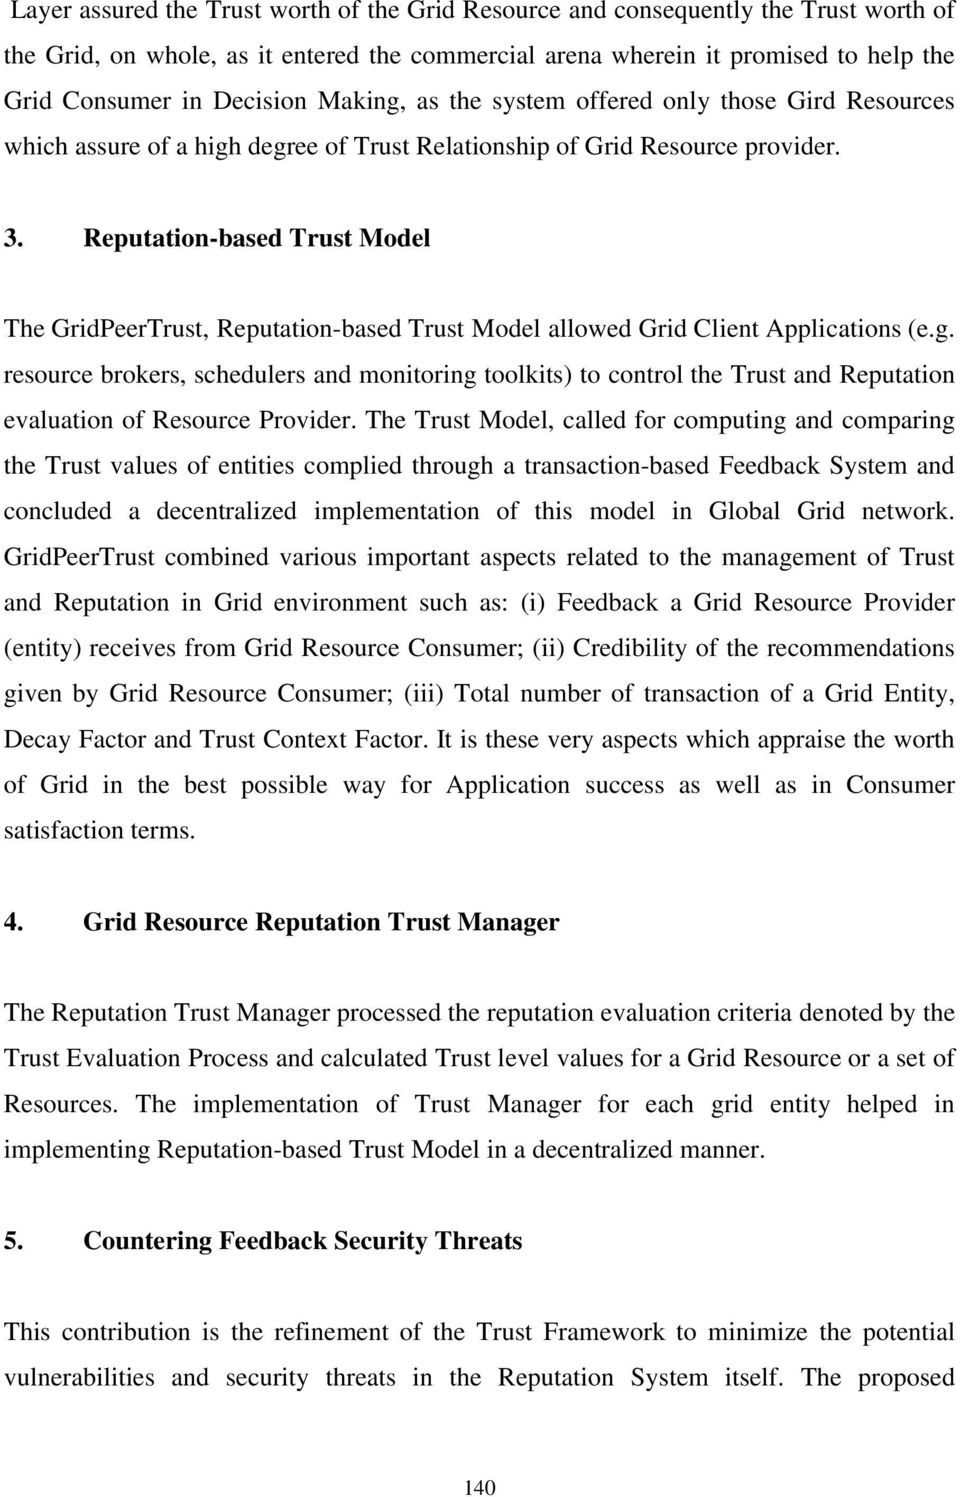 Reputation-based Trust Model The GridPeerTrust, Reputation-based Trust Model allowed Grid Client Applications (e.g.